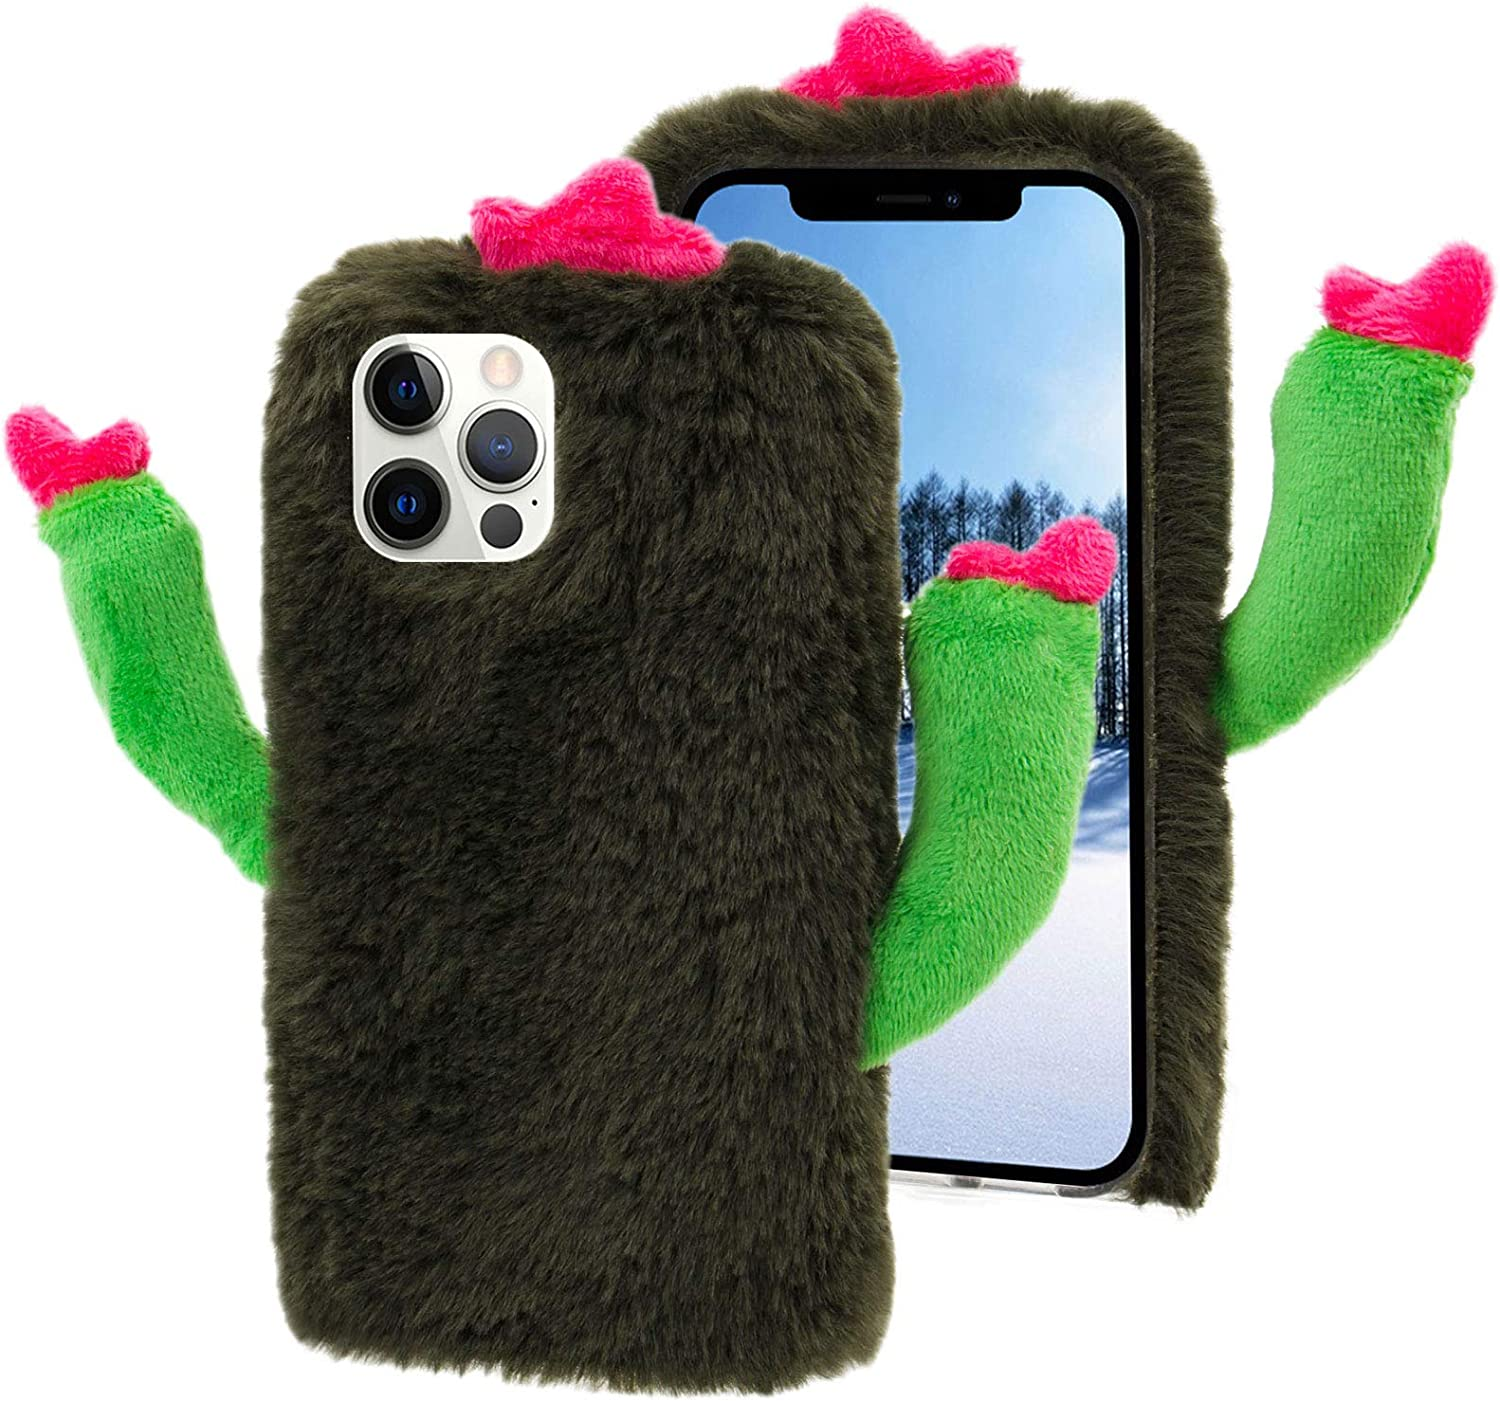 Cactus Phone Case for OFFicial Samsung Galaxy Cas Cheap mail order specialty store 5G Plush Green Not A51